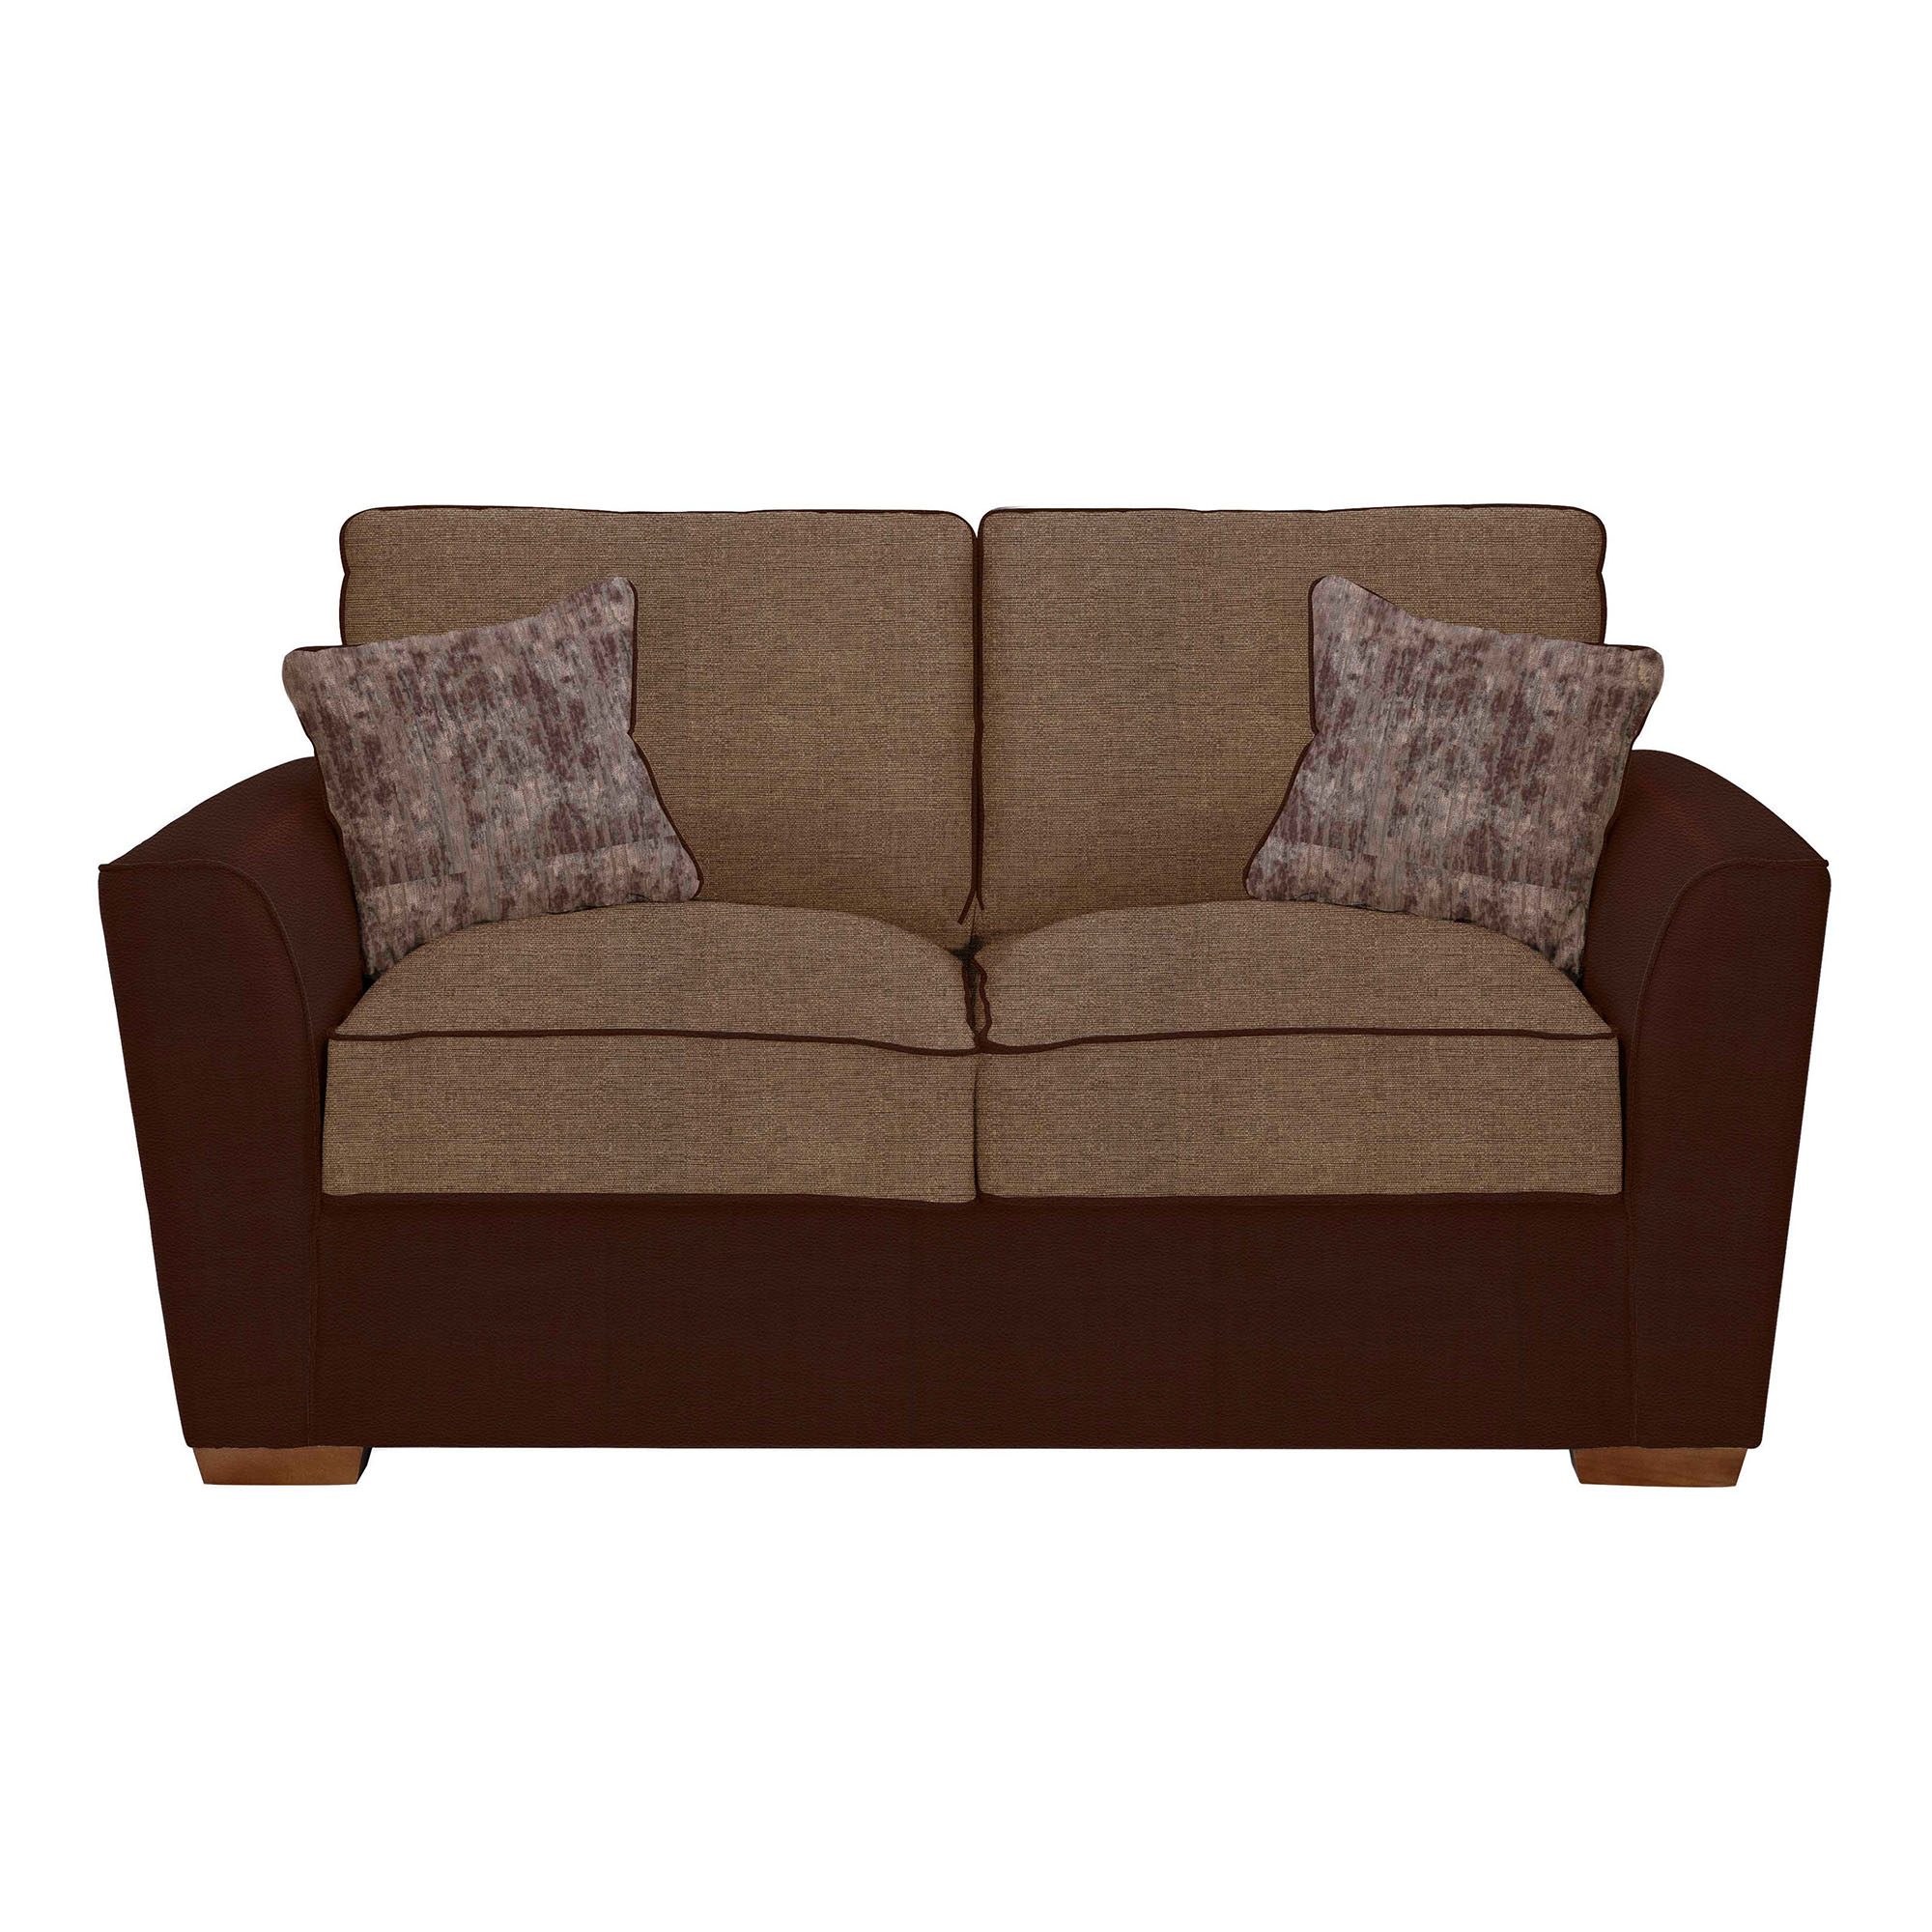 Seater Performance Leather And Fabric Sofa Leather Fabric Mix Brown